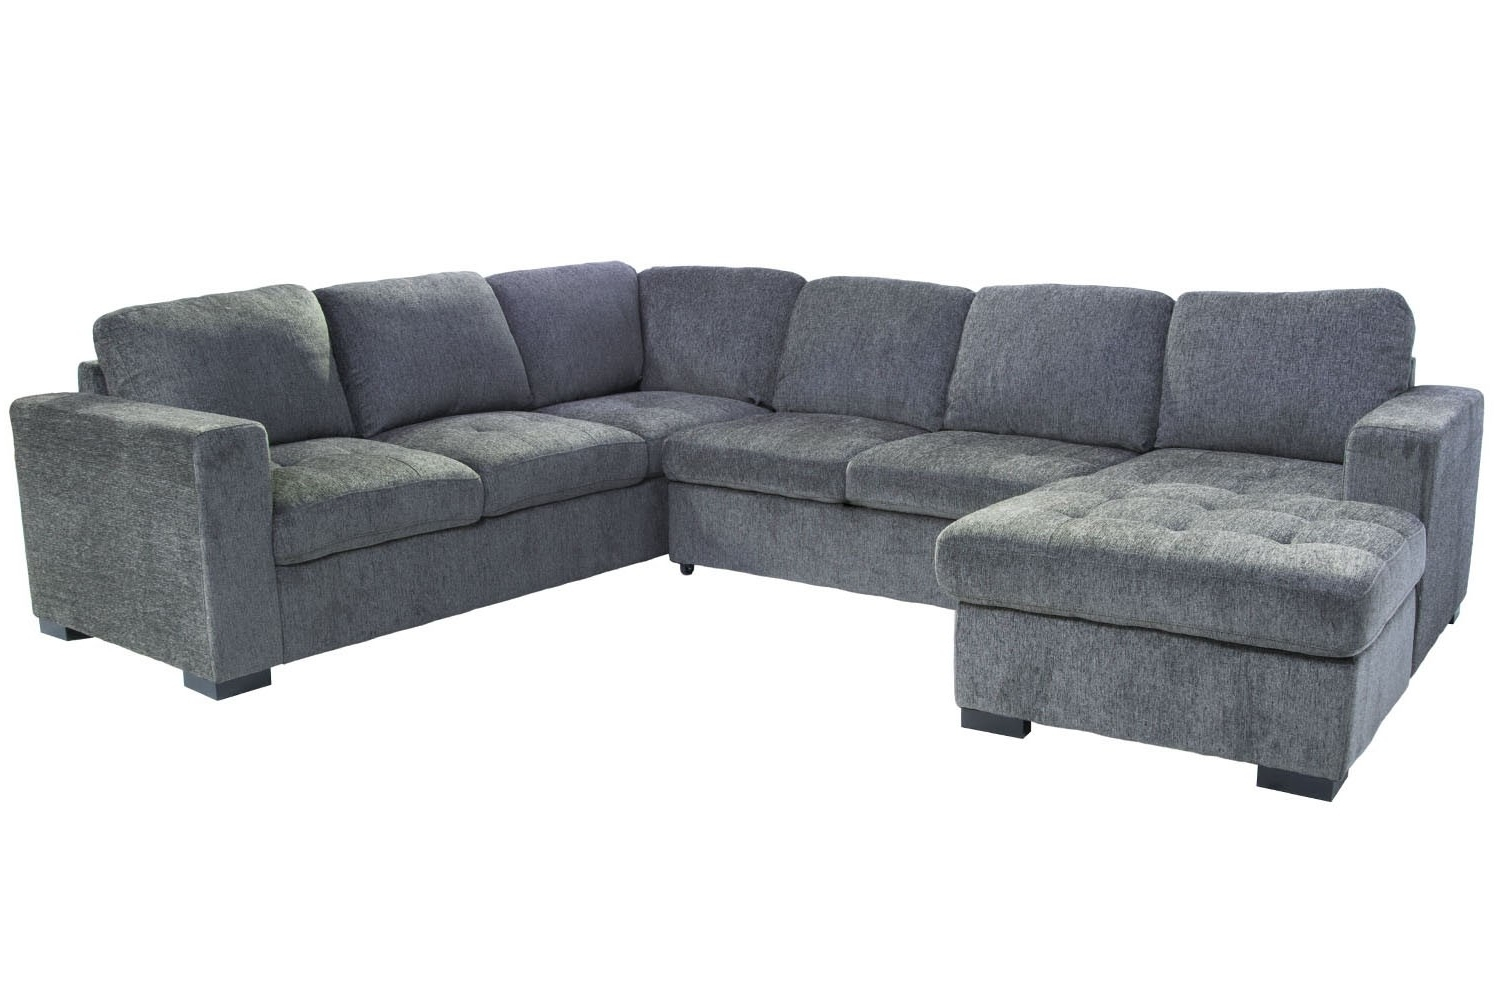 Gray Sectionals With Chaise Intended For Well Known Sectional Sofas (View 7 of 15)